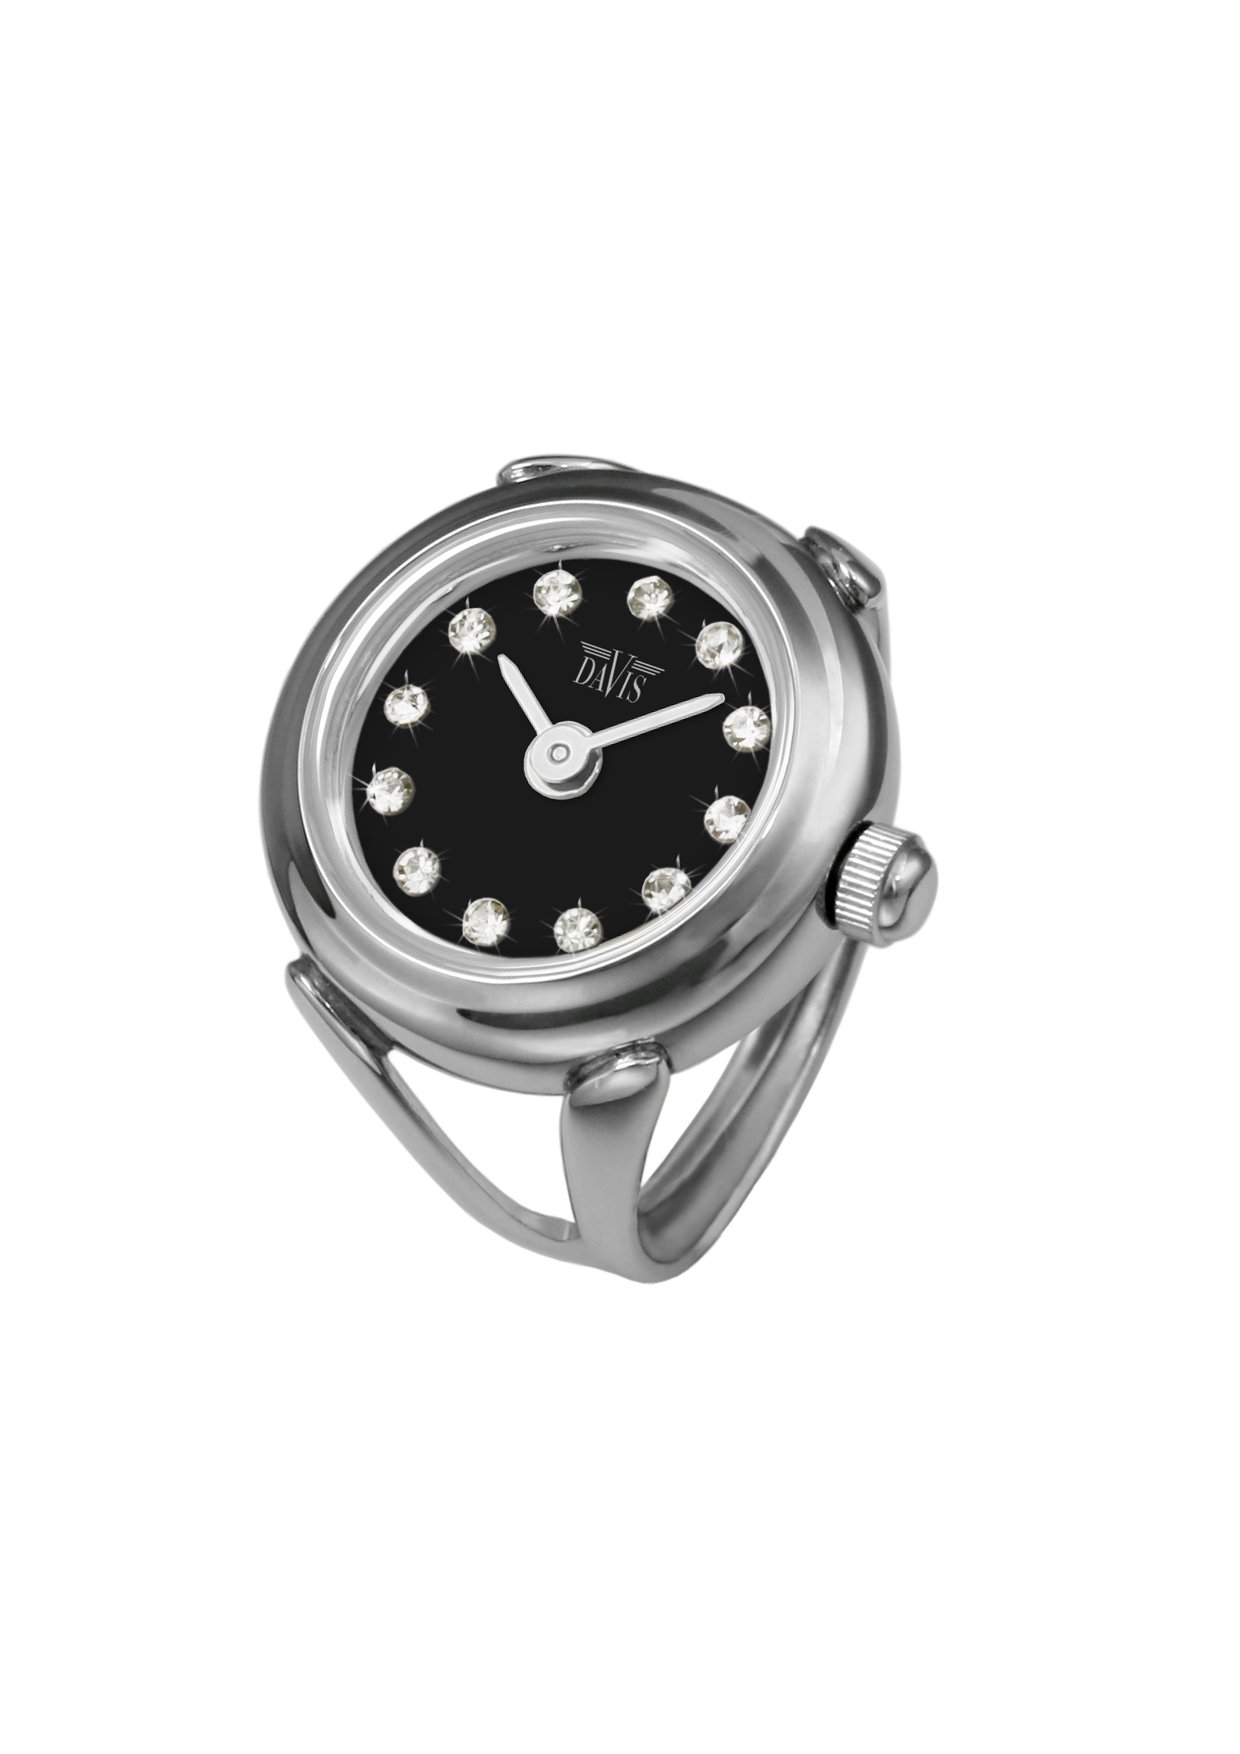 Davis 4173 - Womens Finger Ring Watch Black Dial Swarovski Crystal Rhinestones Sapphire Glass Adjustable by Davis